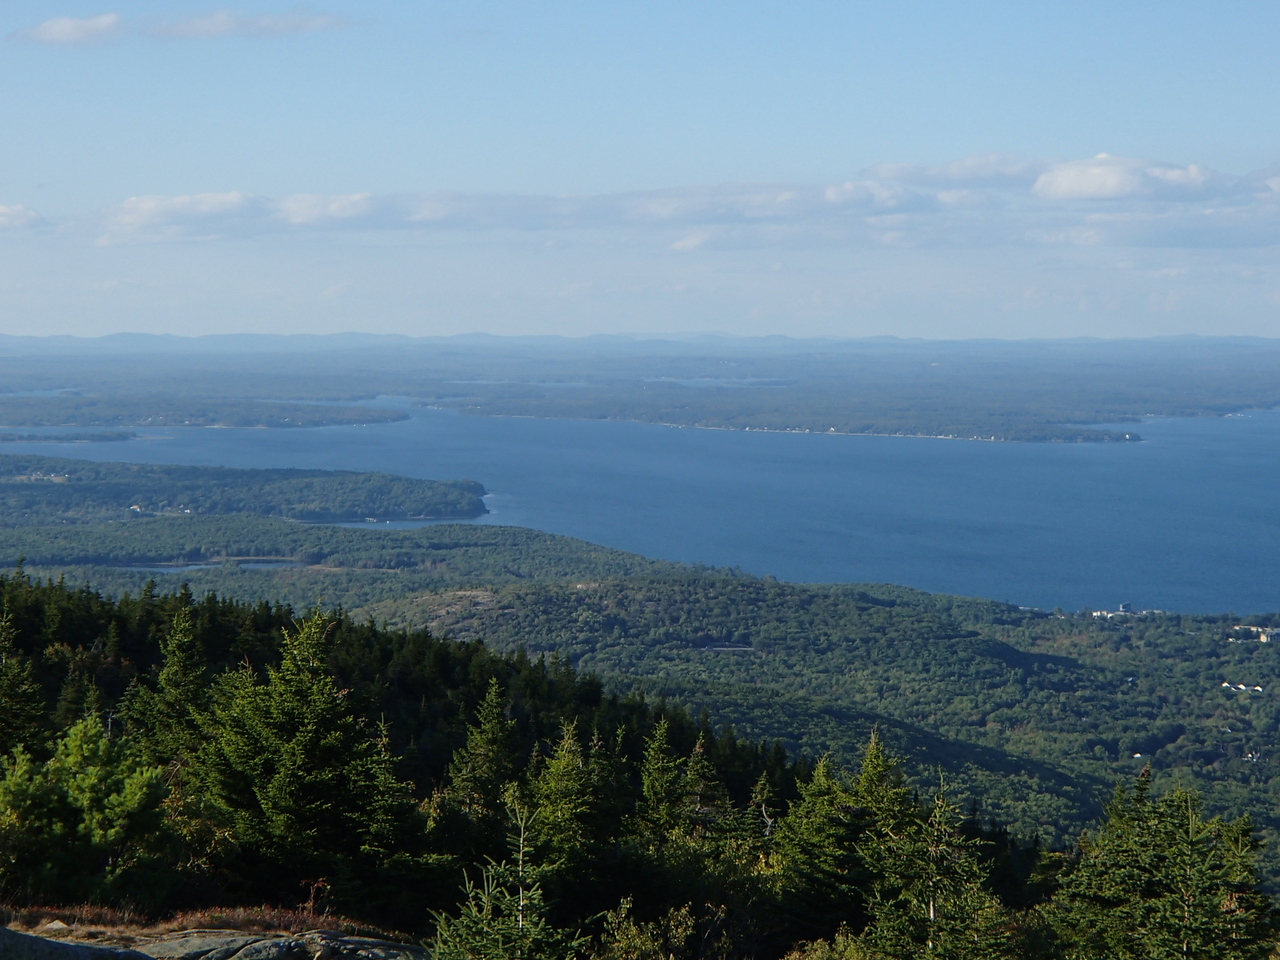 Besides lovely scenery, Cadillac Mountain is famous for its mid-September Hawk migrations.<br /> <br /> How many hawks can you count in this picture?